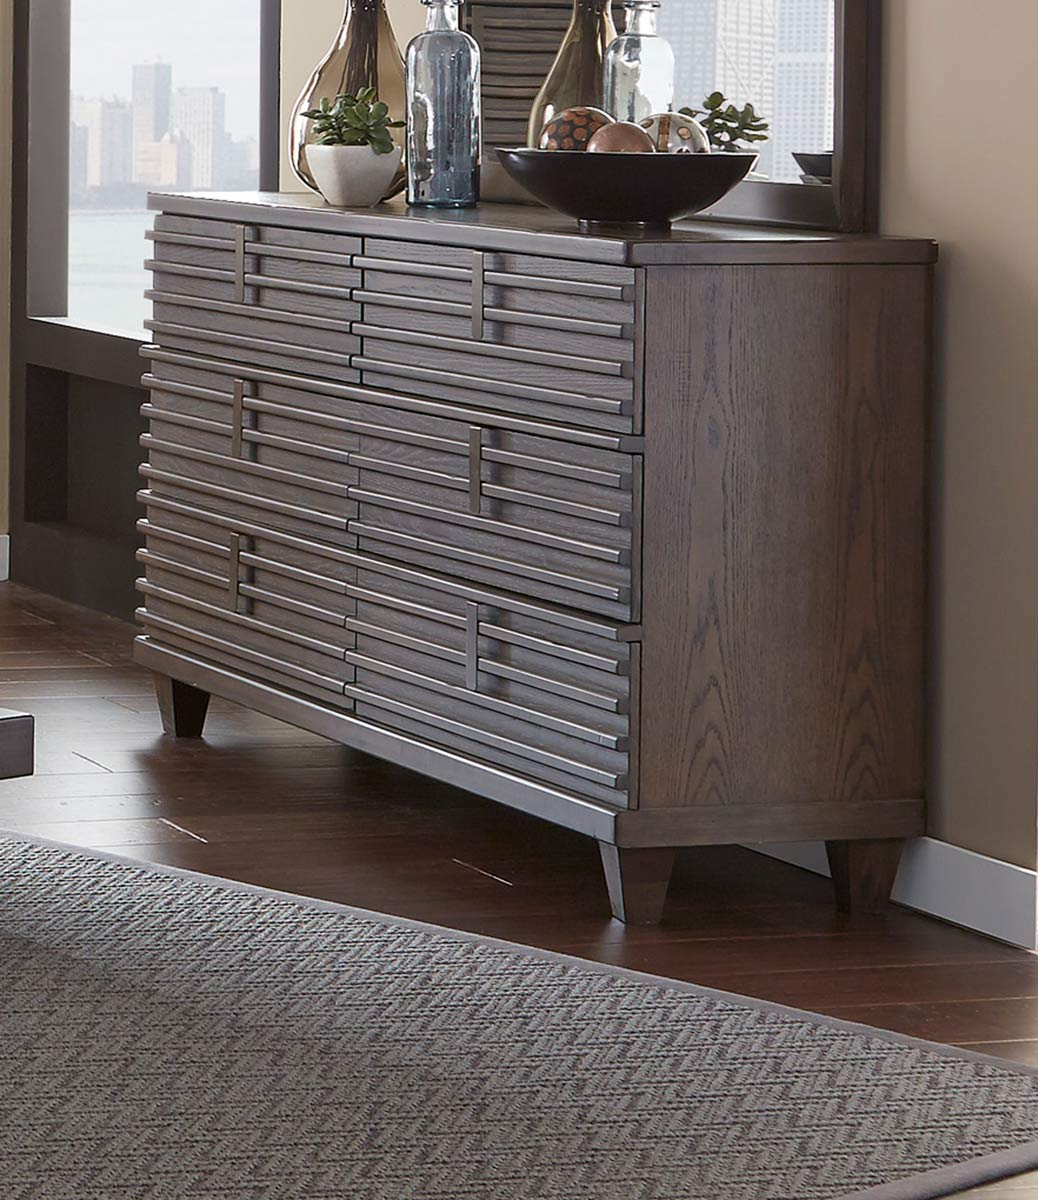 Homelegance Ridgewood Dresser - Rustic Burnished Oak